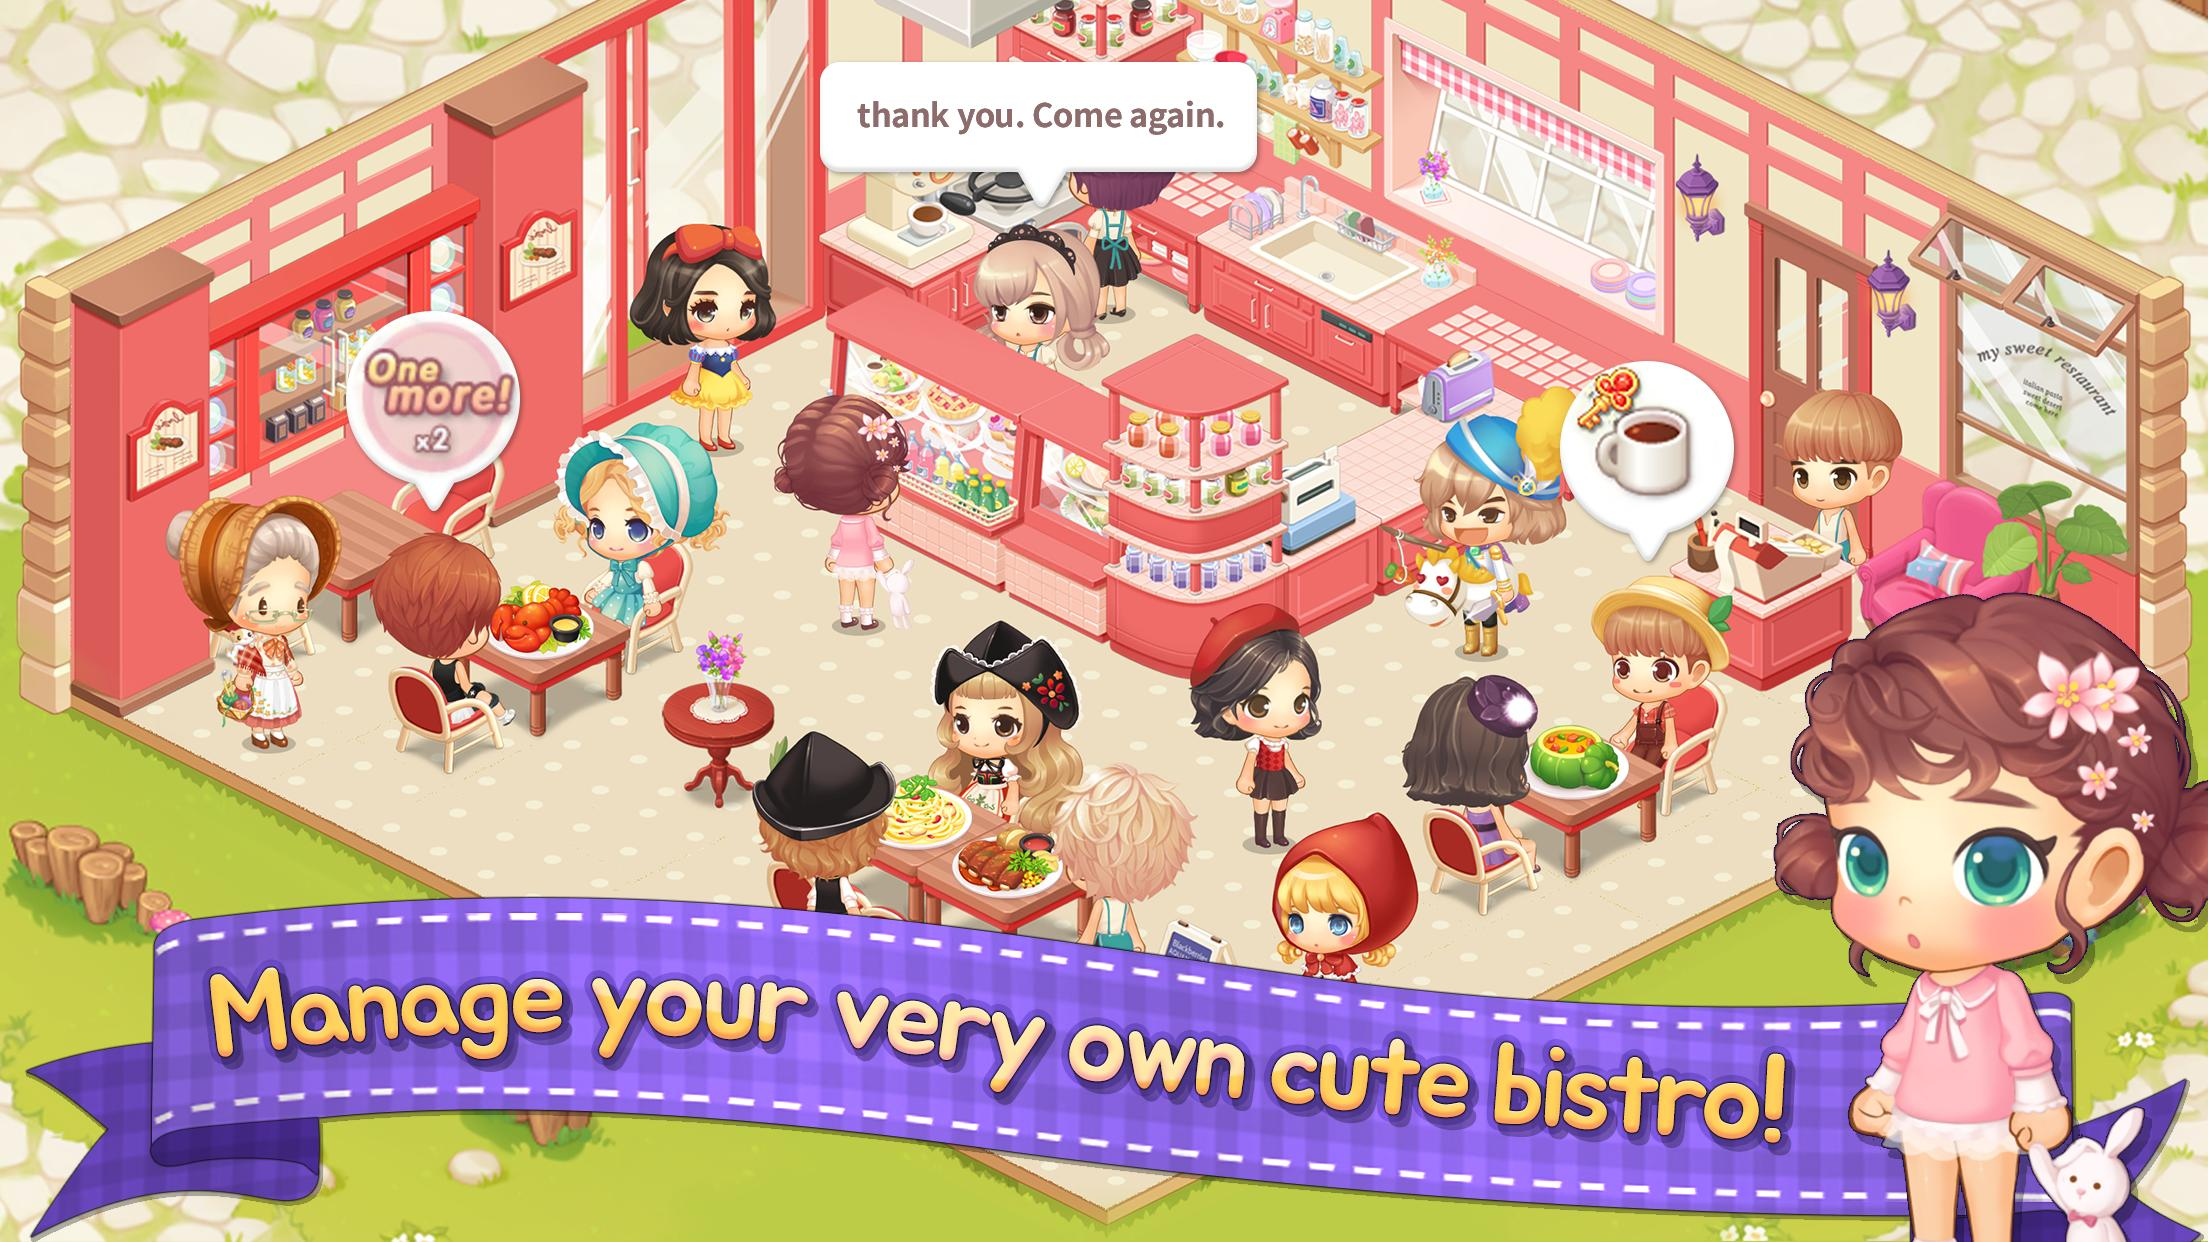 My Secret Bistro Play cooking game with friends 1.6.4 Screenshot 8